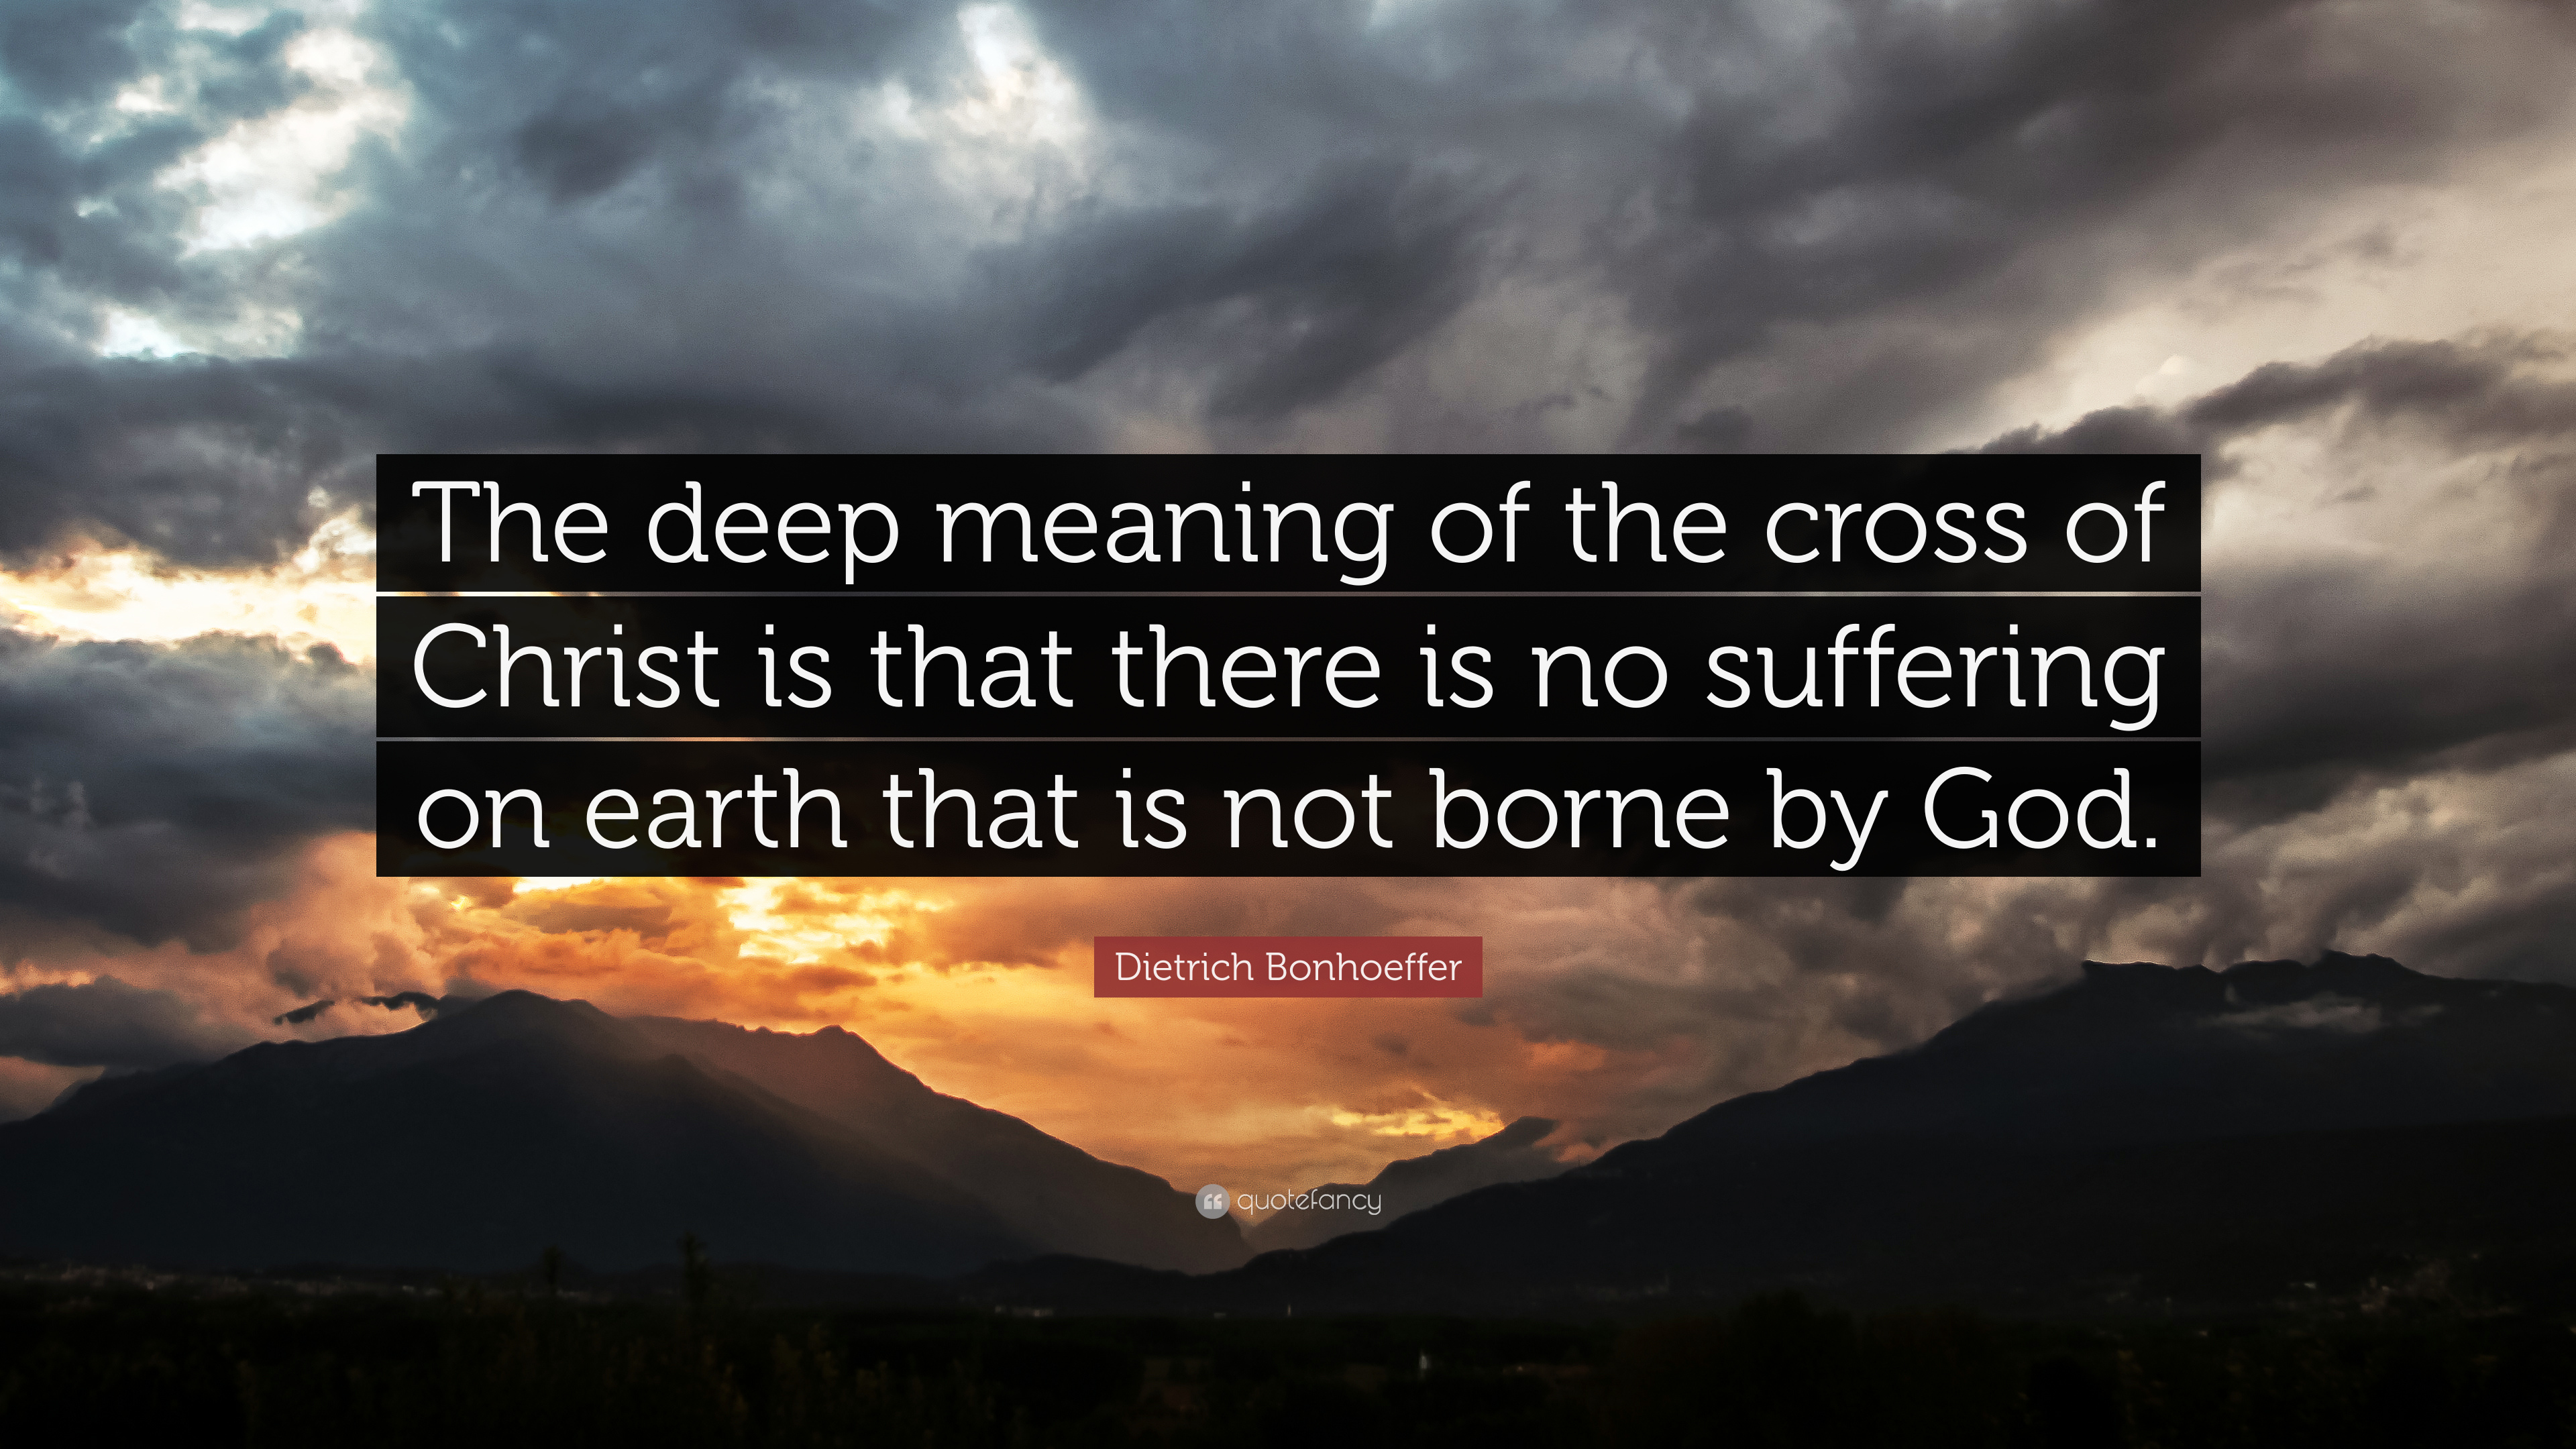 dietrich bonhoeffer quote u201cthe deep meaning of the cross of